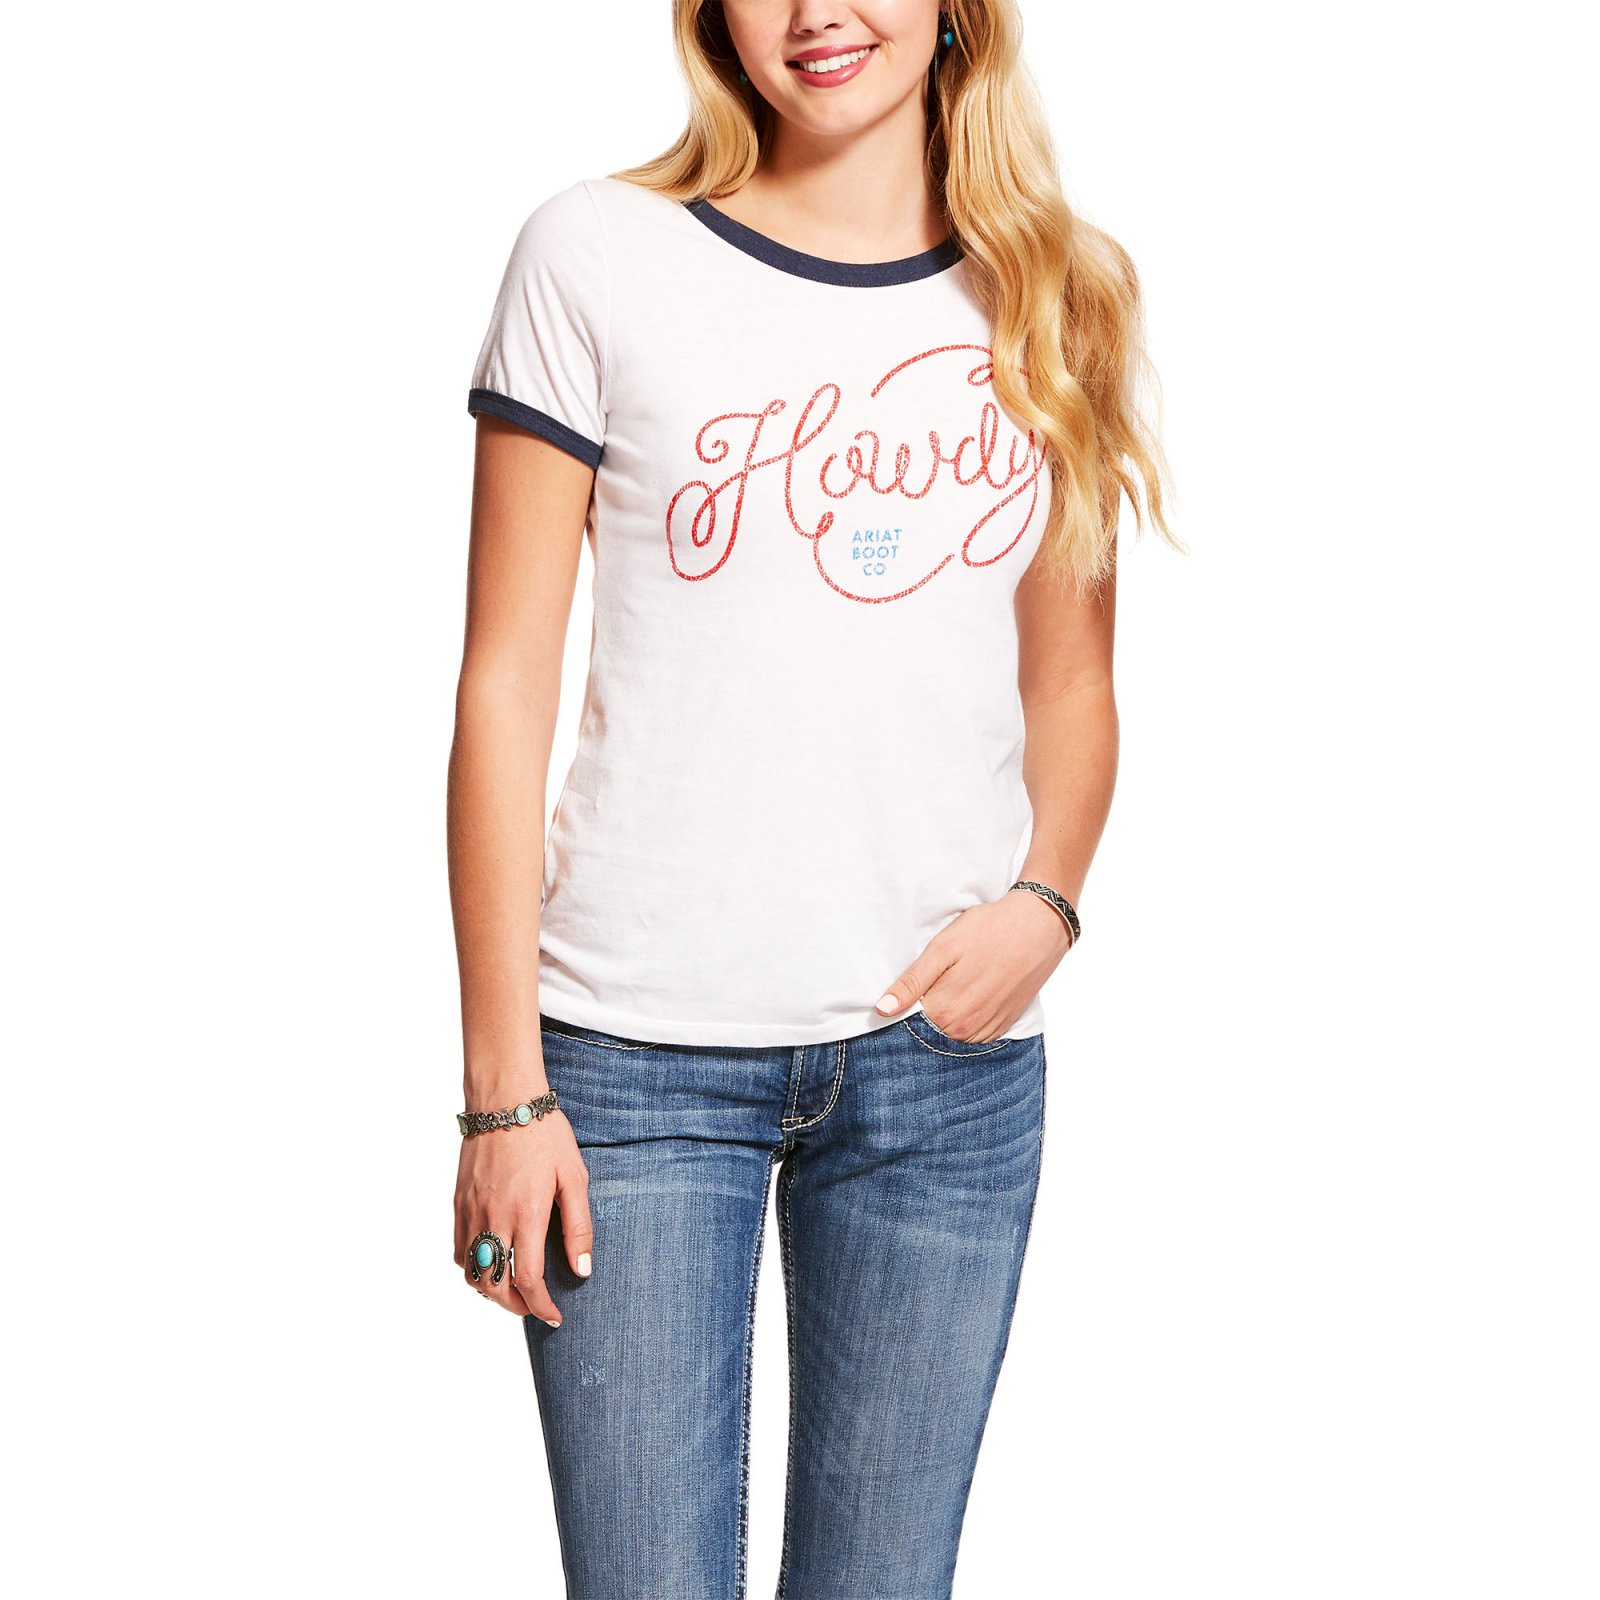 Howdy Ringer Tee from Ariat